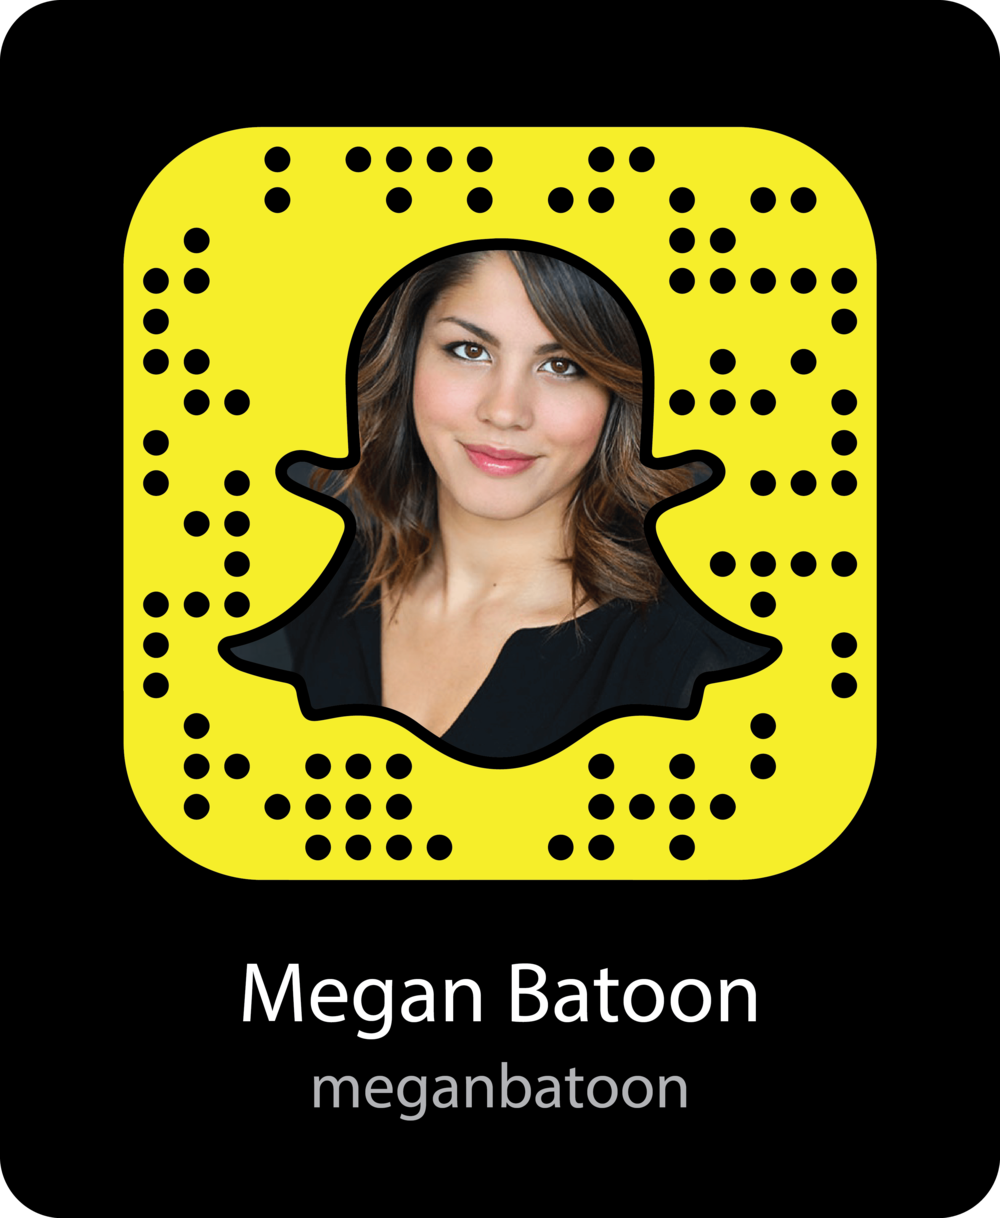 megan-batoon-youtube-celebrity-snapchat-snapcode